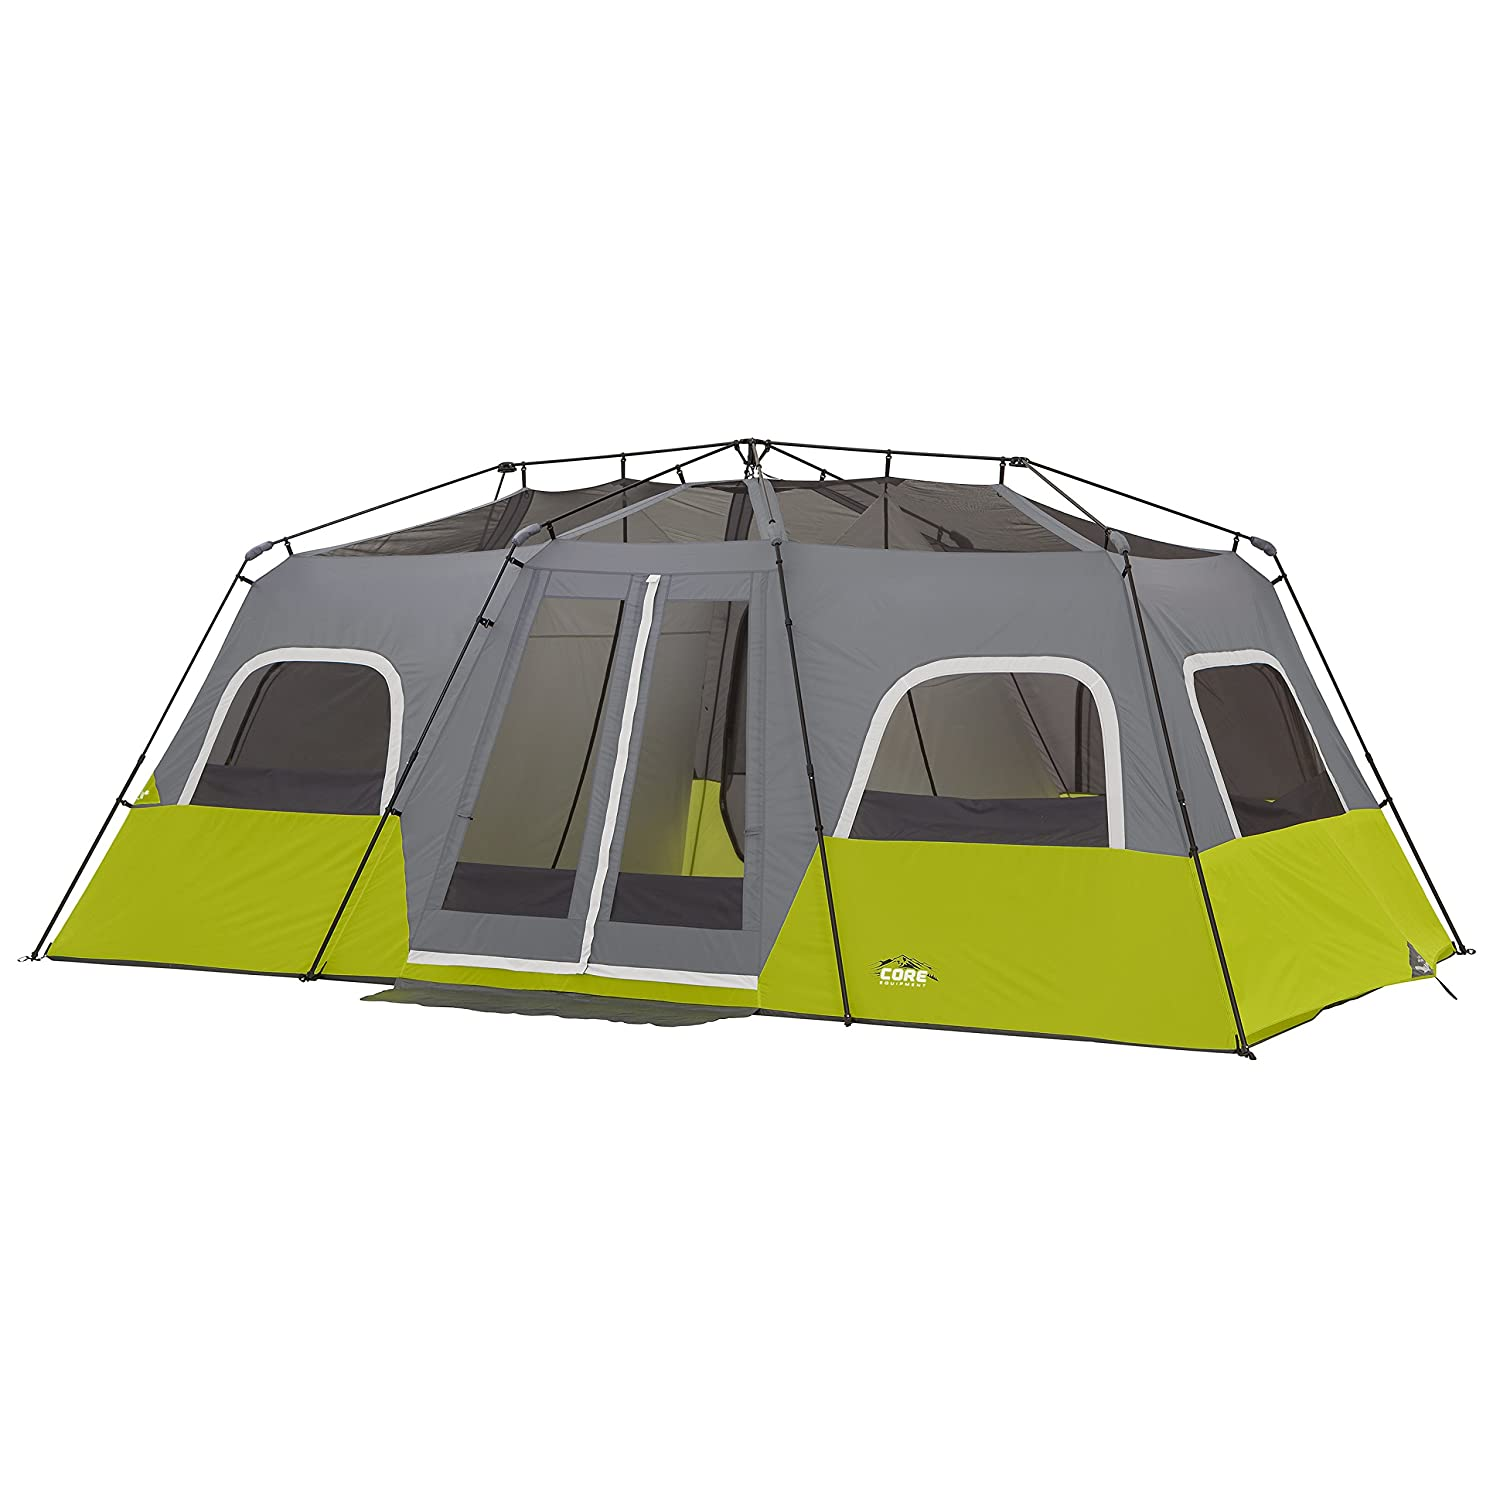 Amazon.com  CORE 12 Person Instant Cabin Tent - 18u0027 x 10u0027  Sports u0026 Outdoors  sc 1 st  Amazon.com & Amazon.com : CORE 12 Person Instant Cabin Tent - 18u0027 x 10 ...